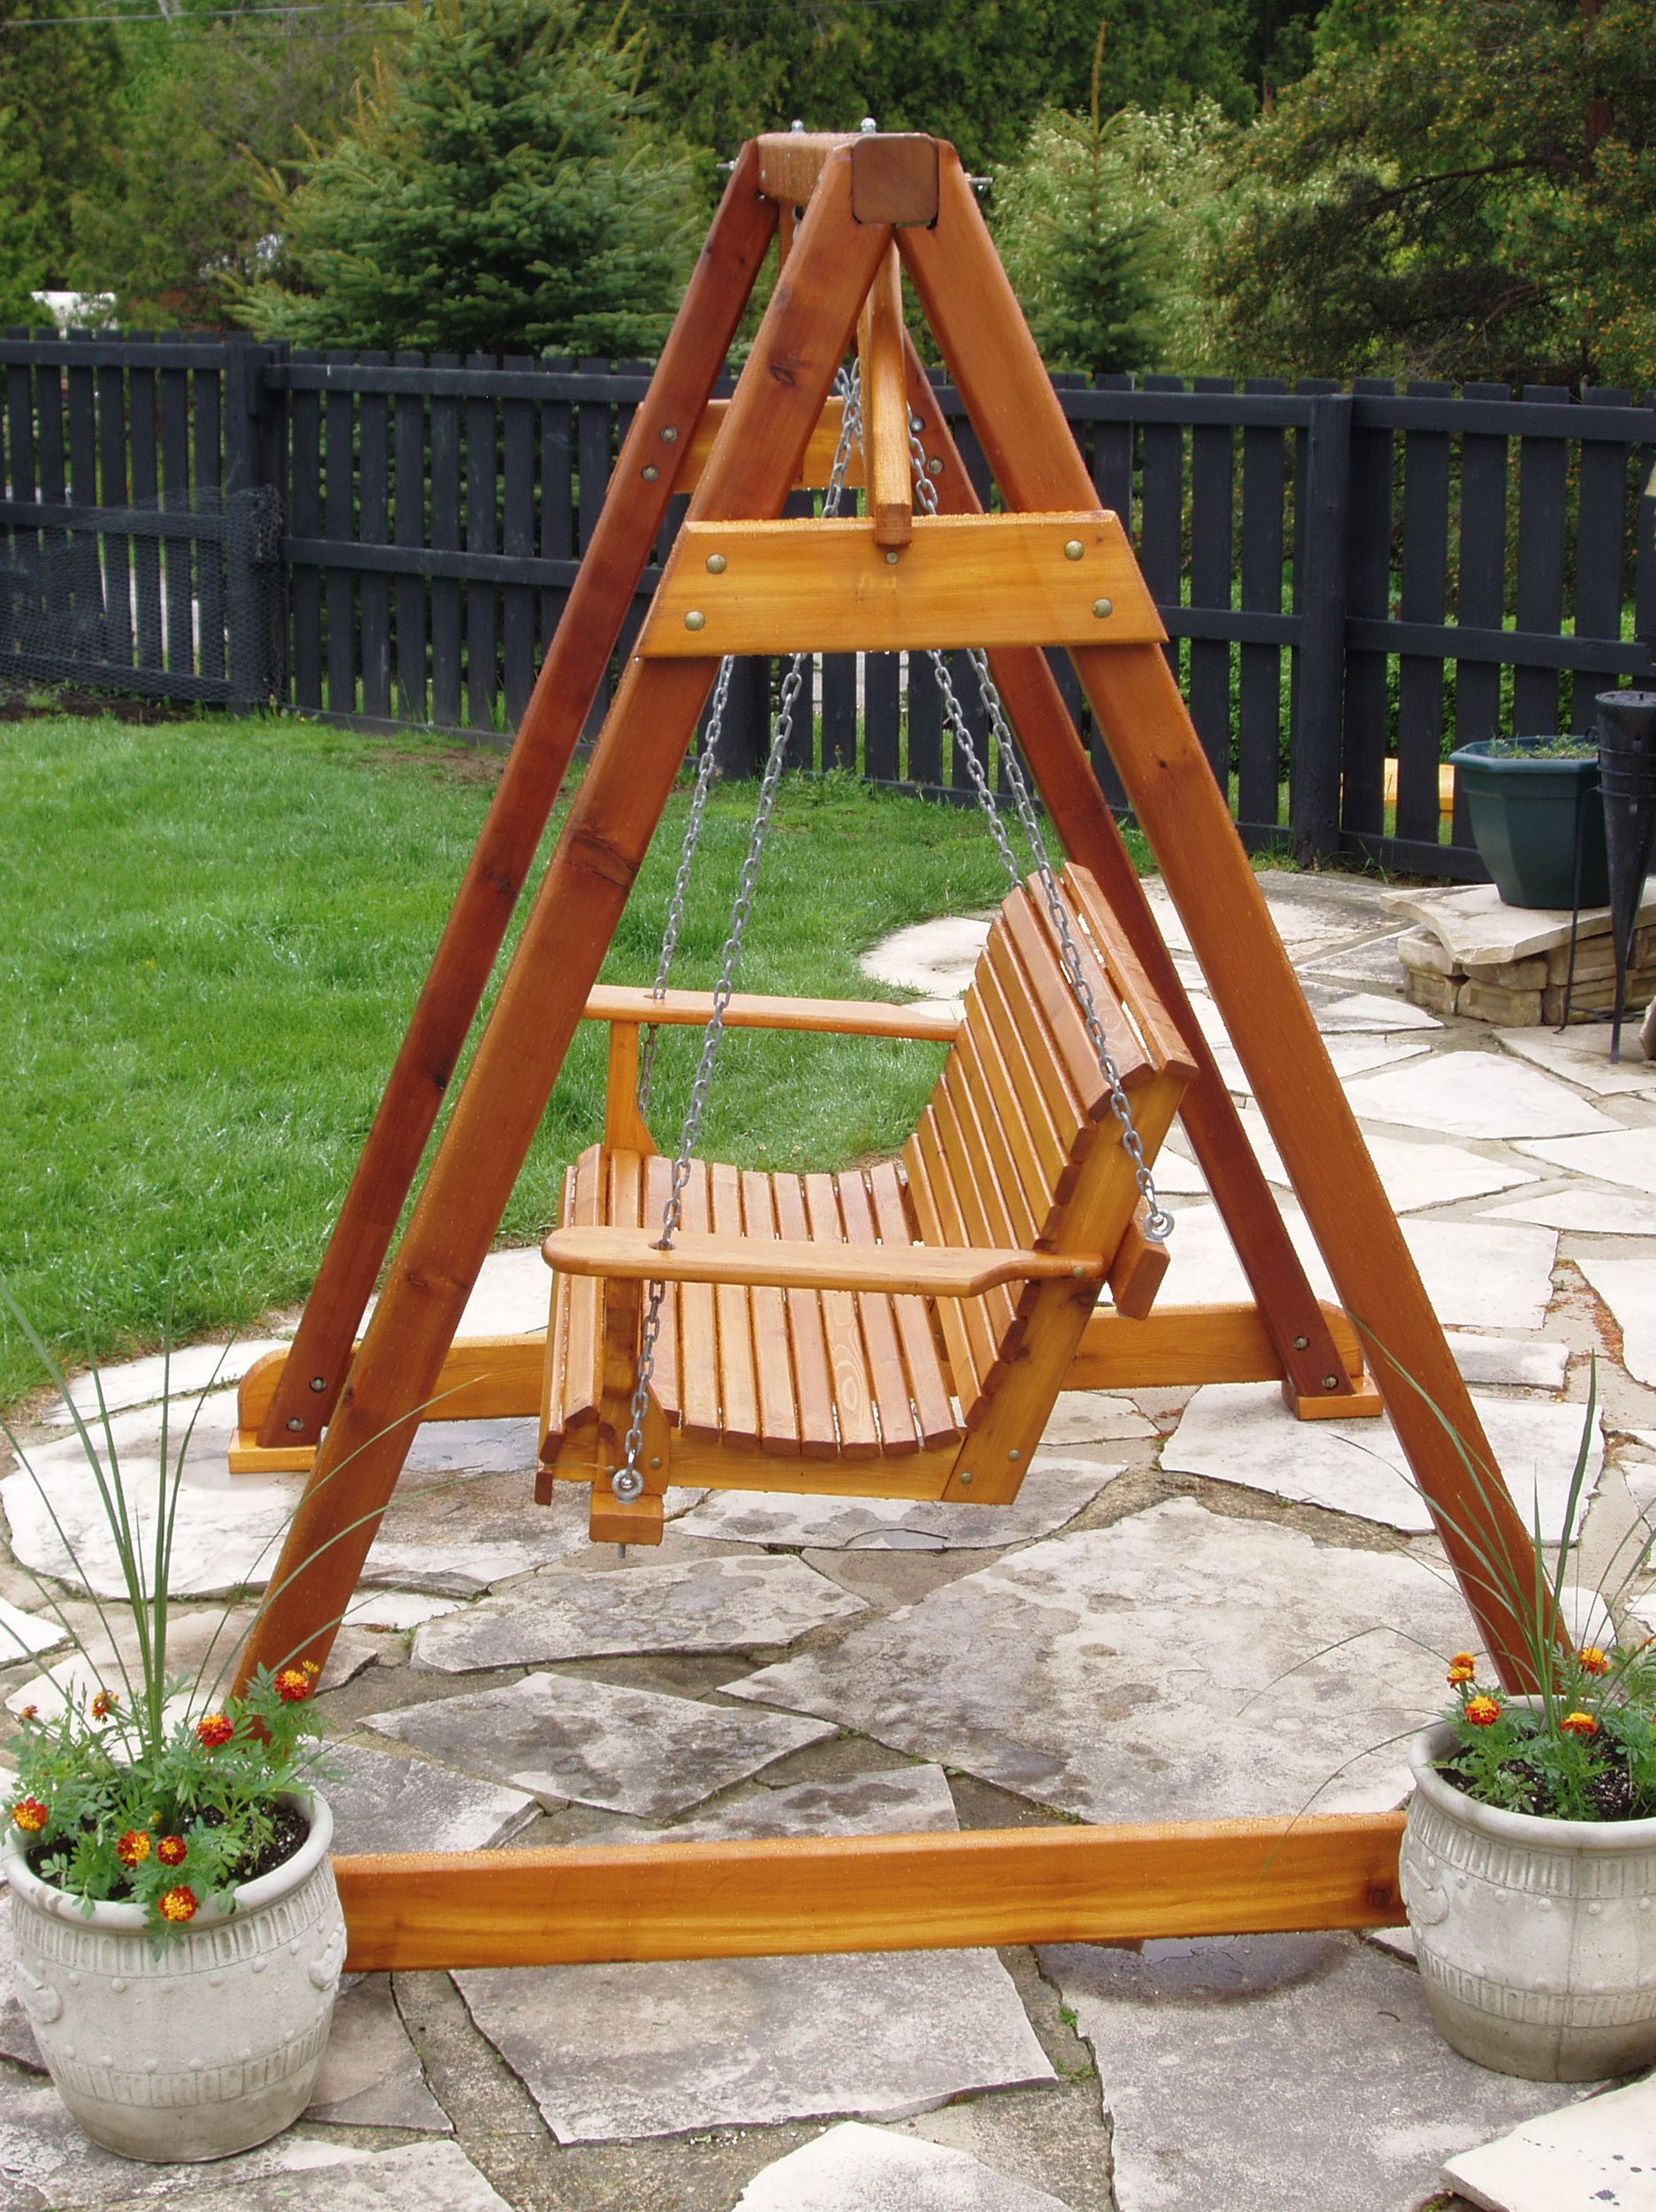 Porch Swing A Frame Plans Outdoor Wood Projects Diy Porch Swing